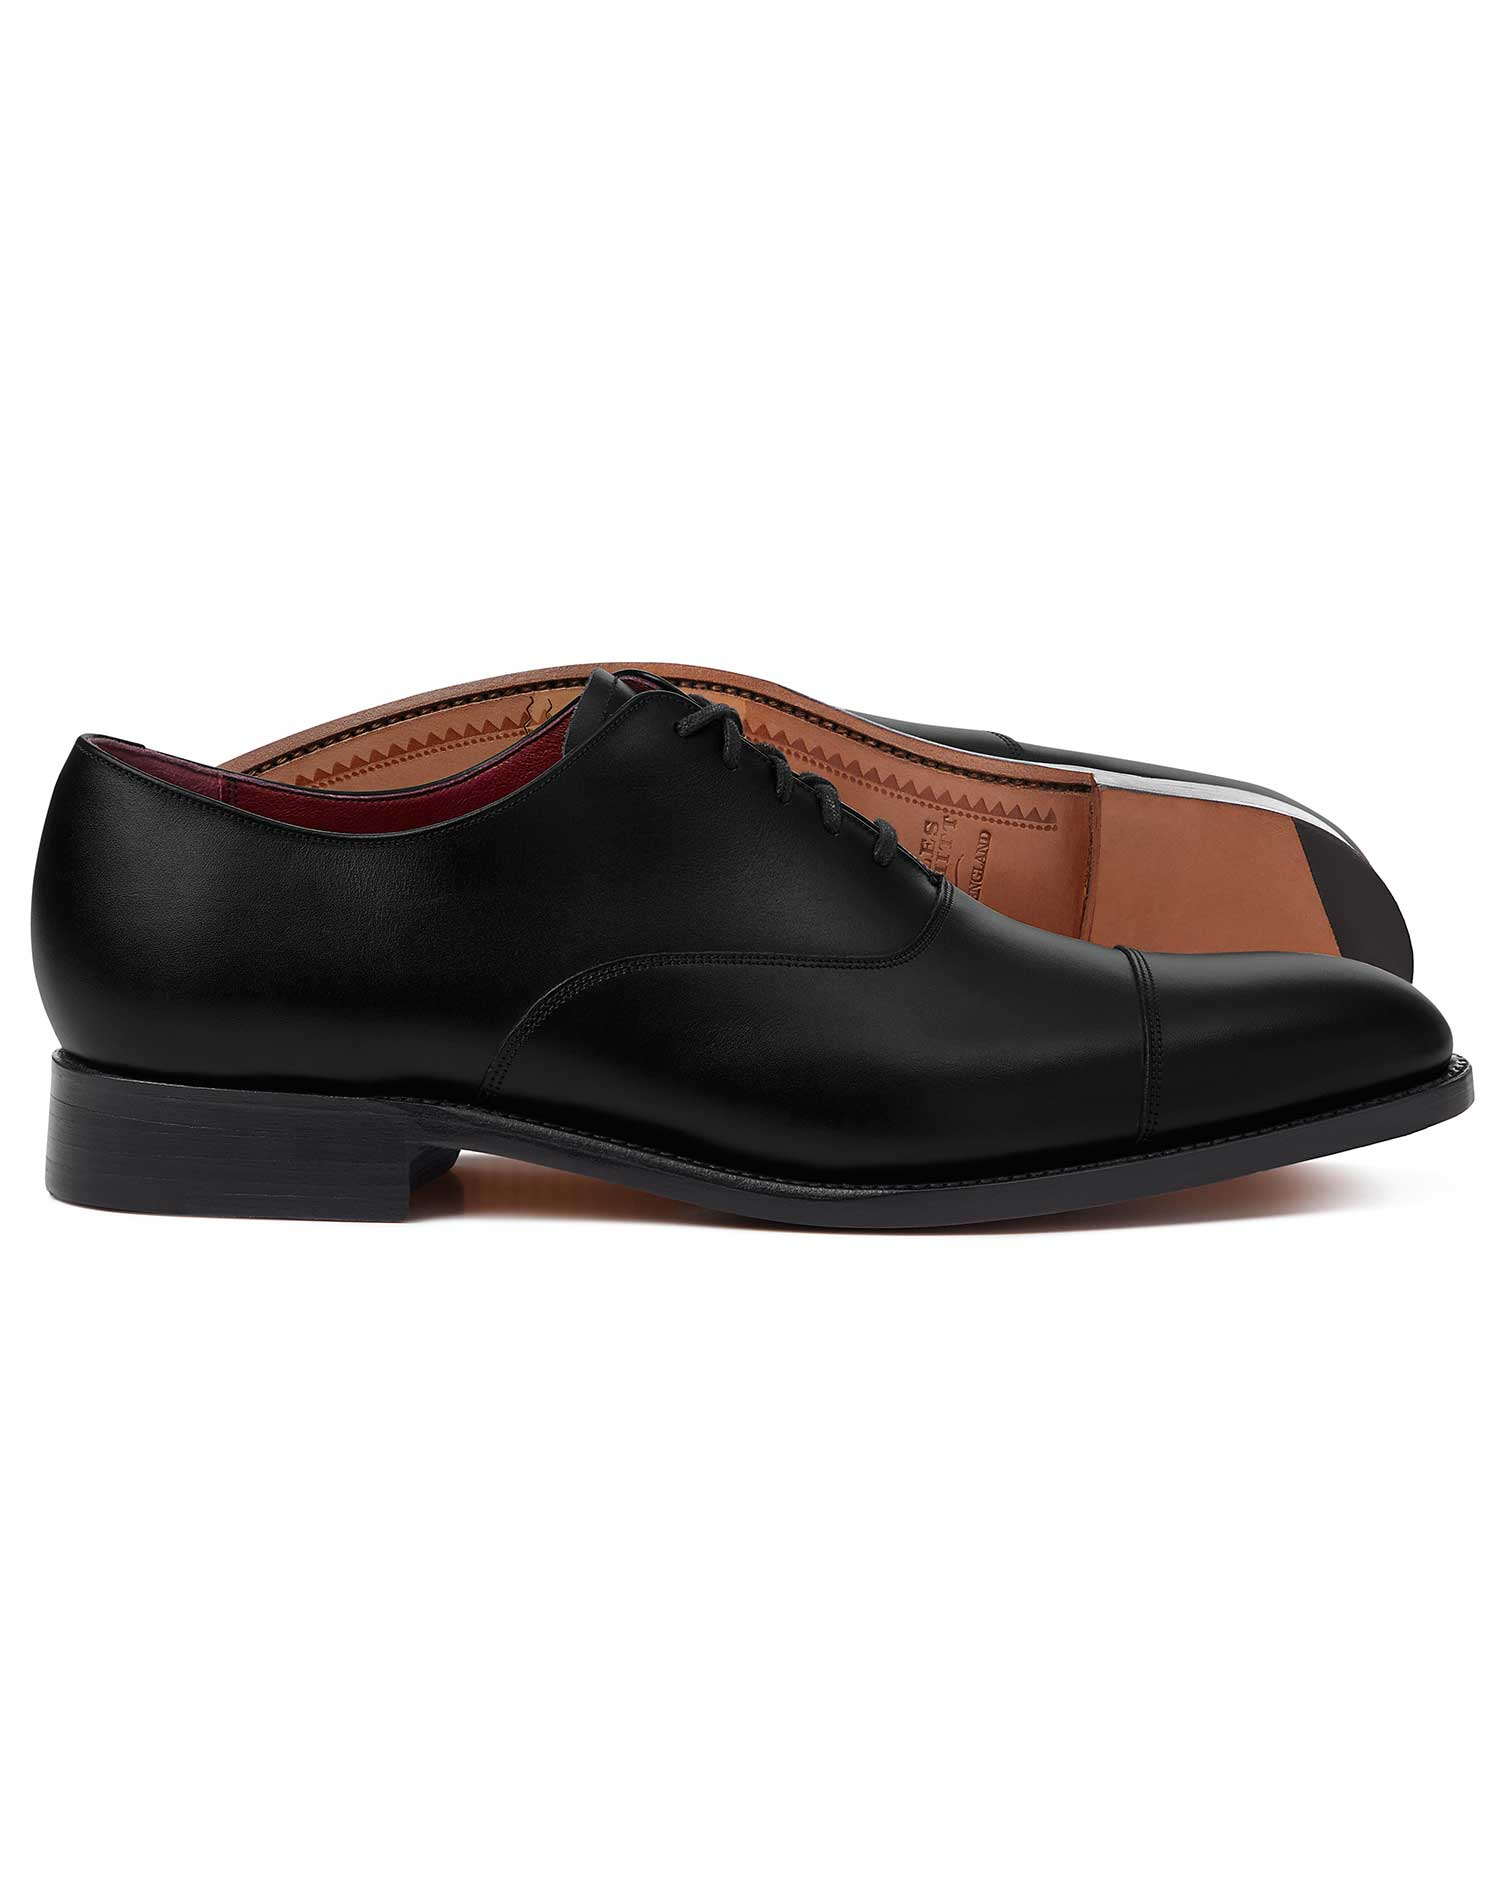 Black Made In England Oxford Flex Sole Shoe Size 6.5 R by Charles Tyrwhitt